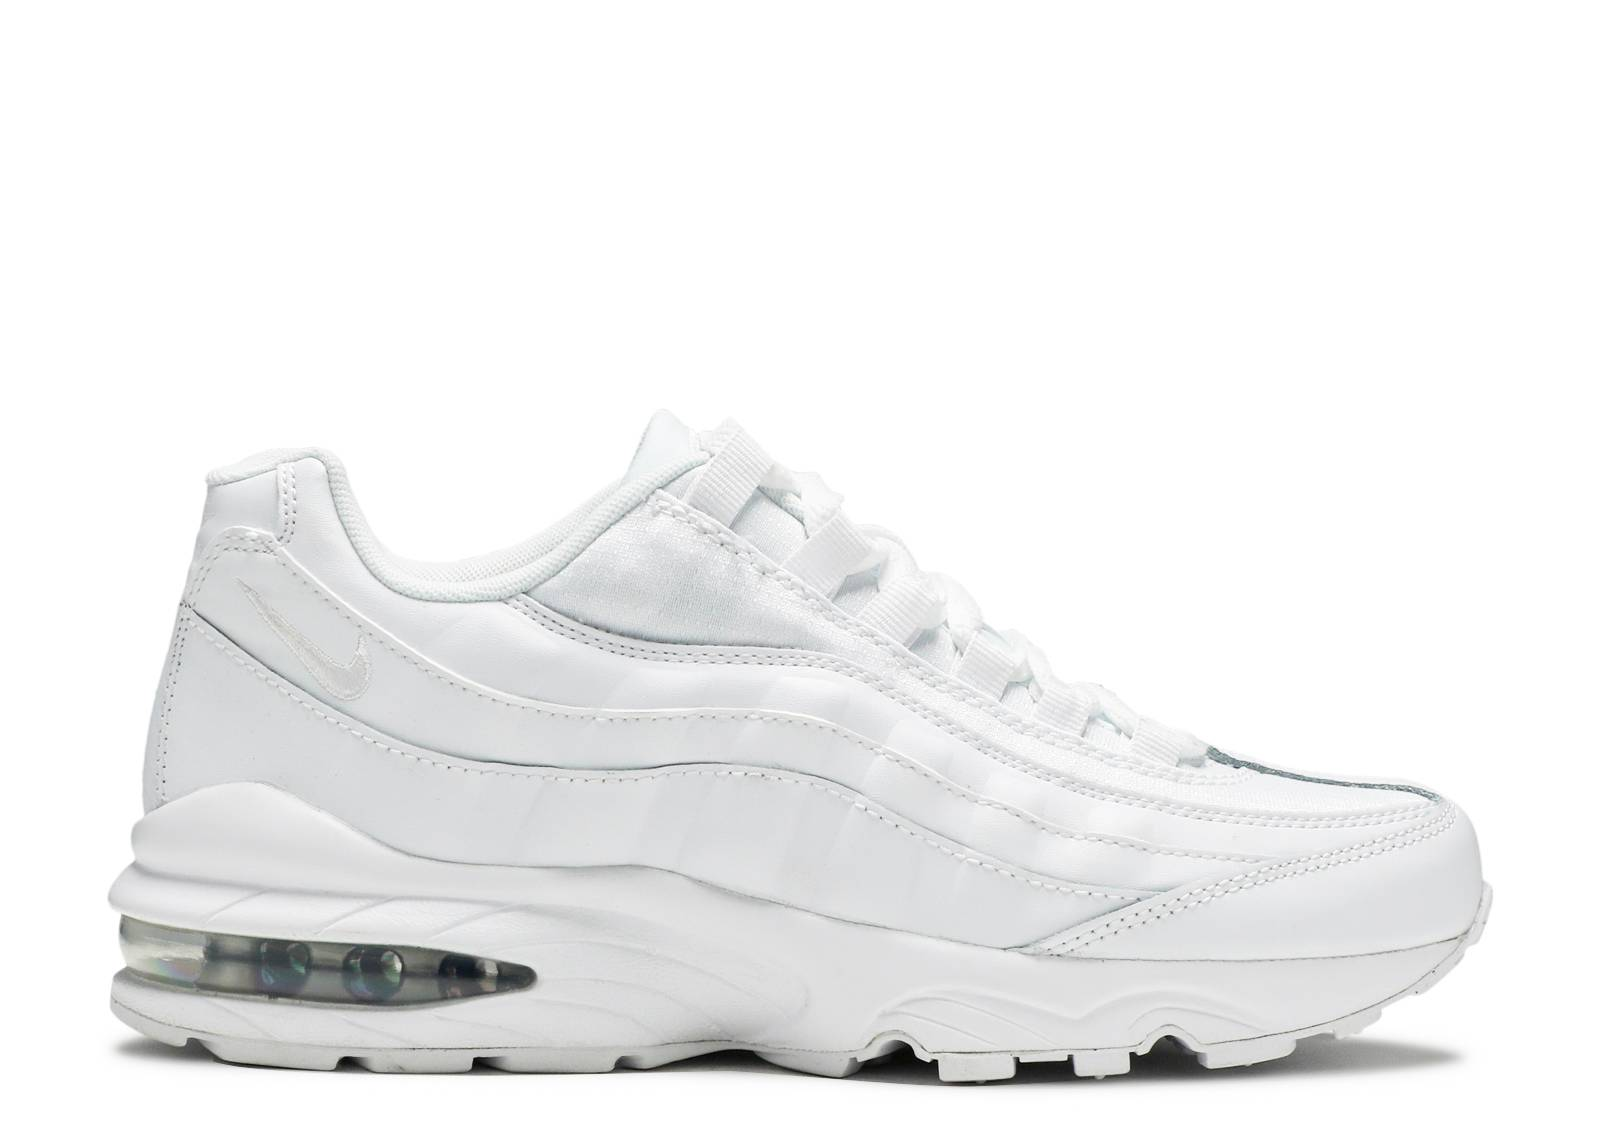 Air Max 95 GS 'White Metallic Silver'